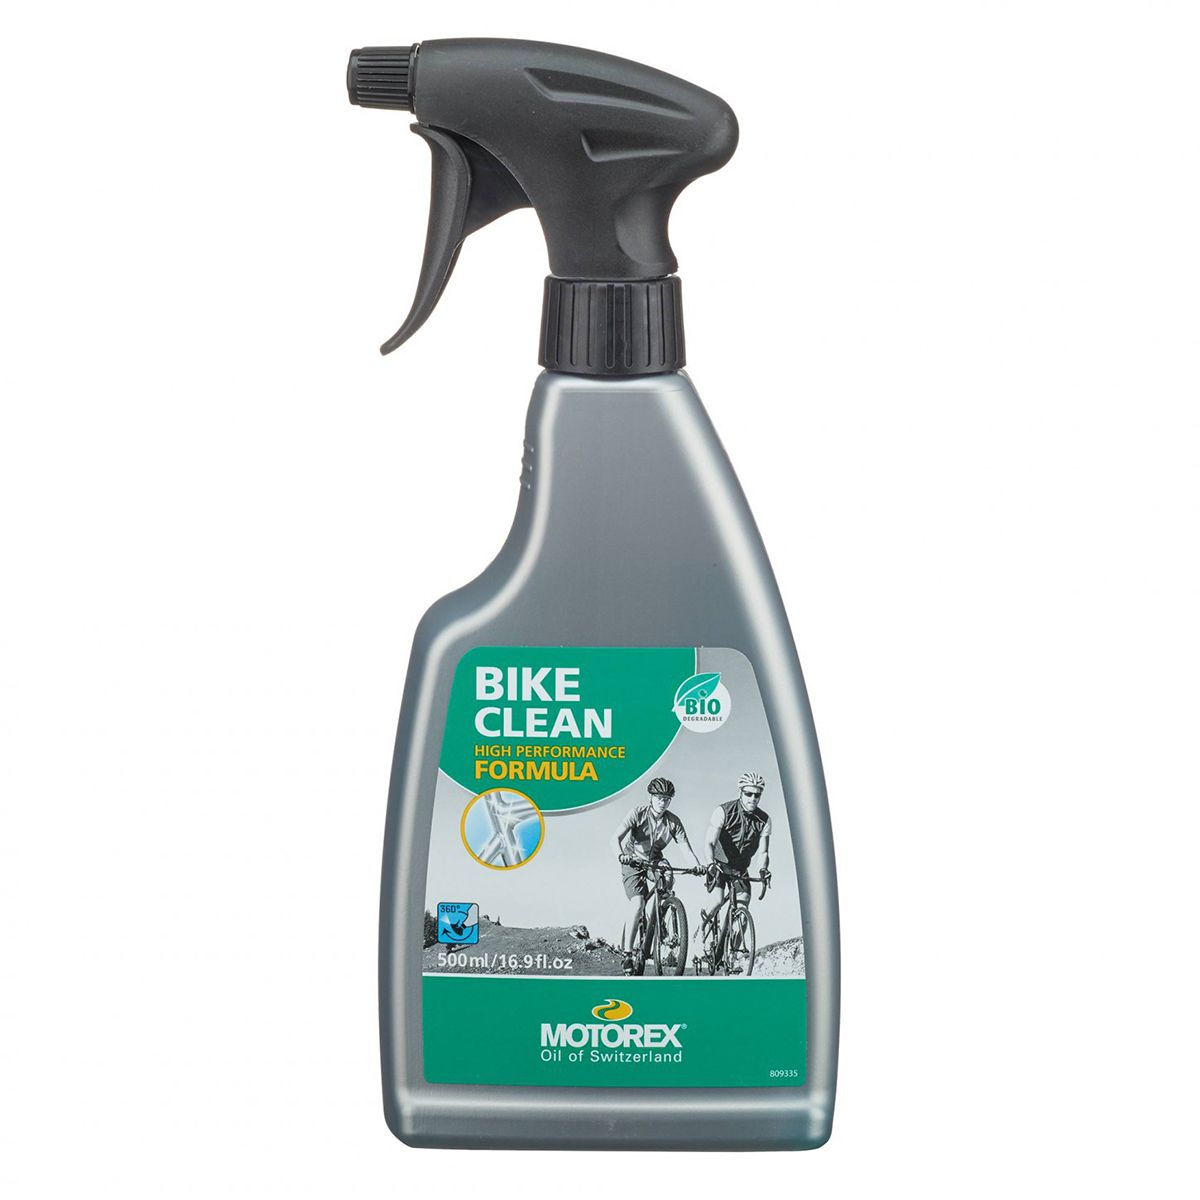 Bike Clean cleaner